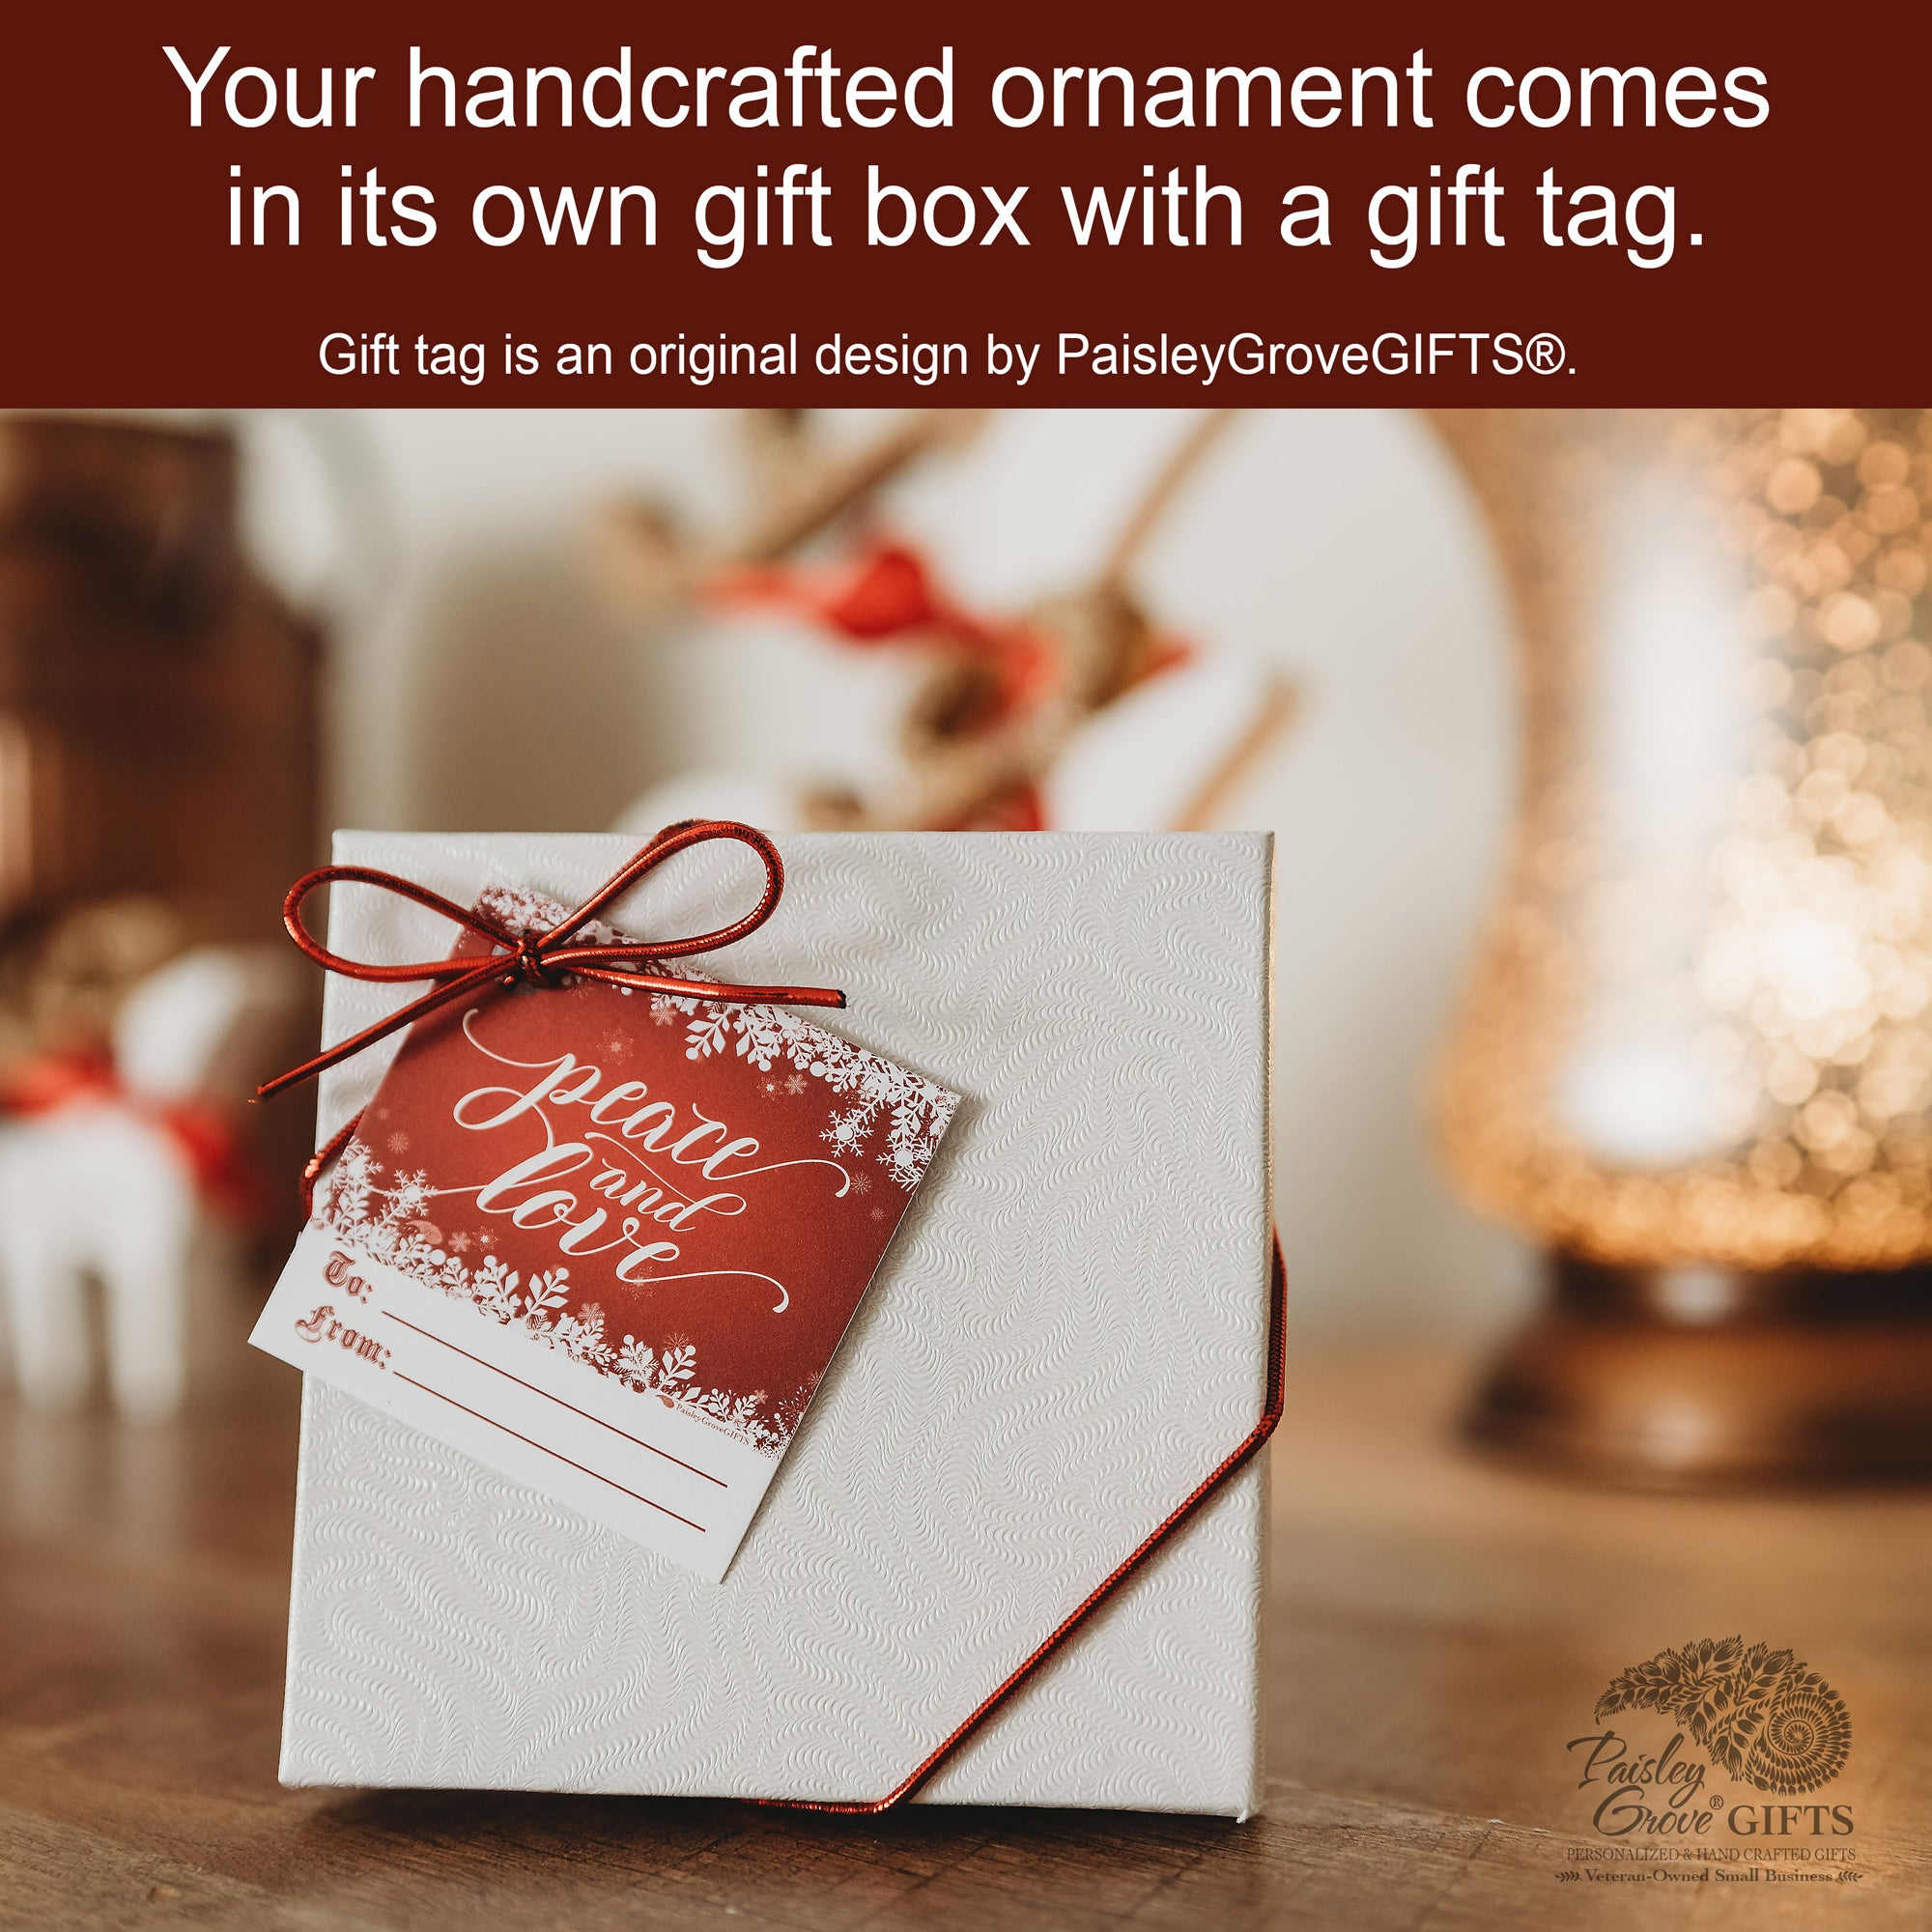 CopyrightPaisleyGroveGIFTS S510c Our 1st Christmas as Husband and Wife Ornament comes with free gift box and gift tag